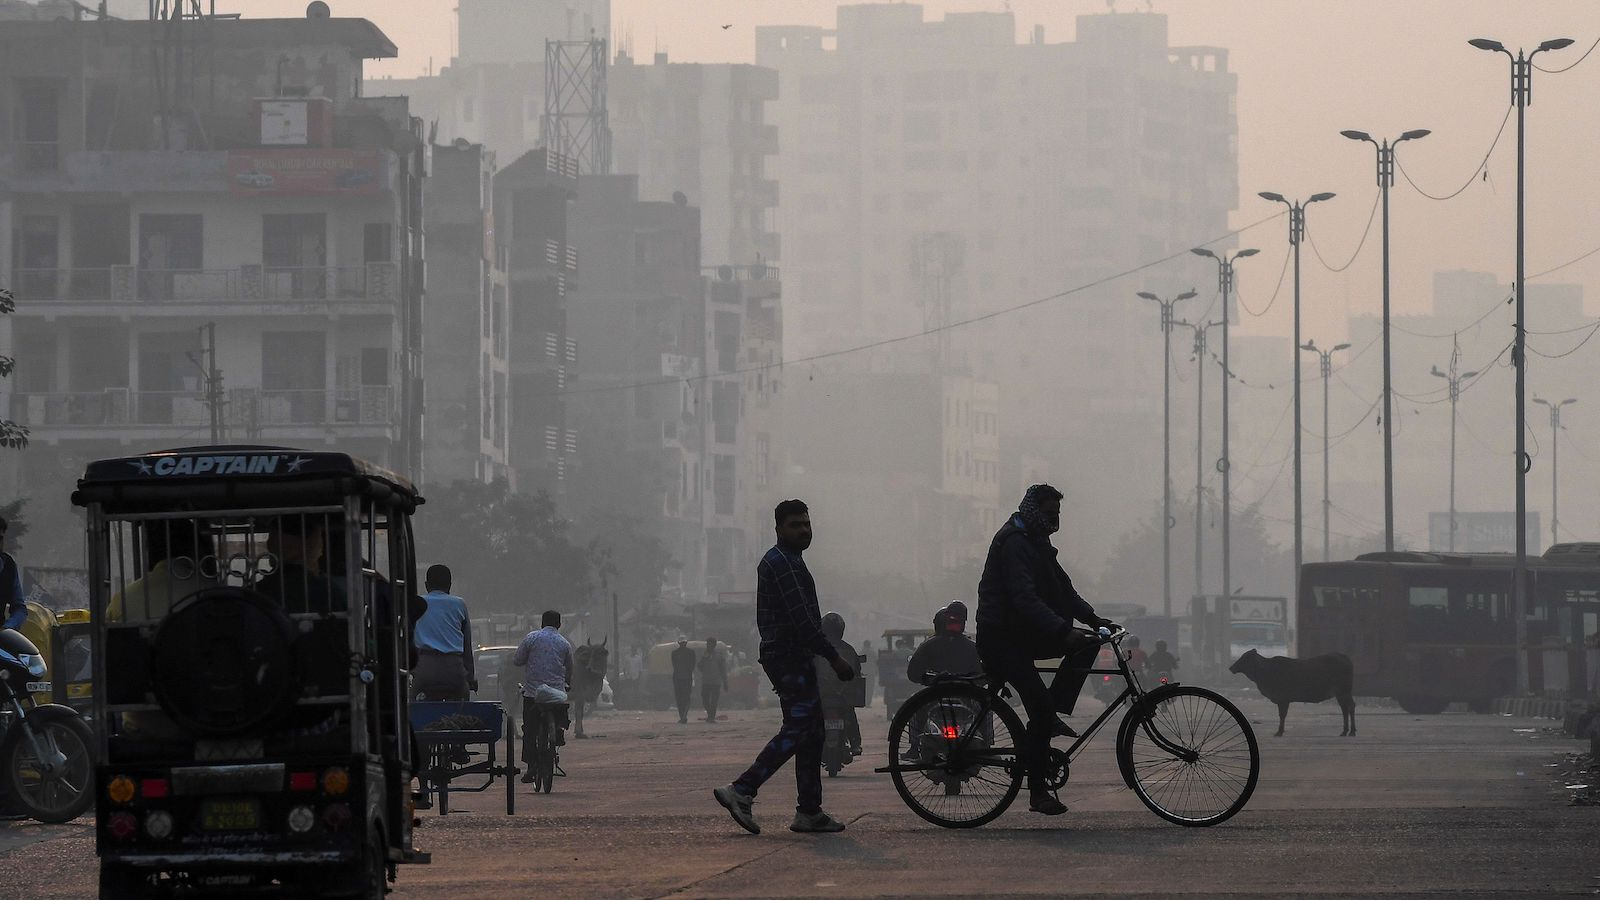 A smoggy street in New Delhi